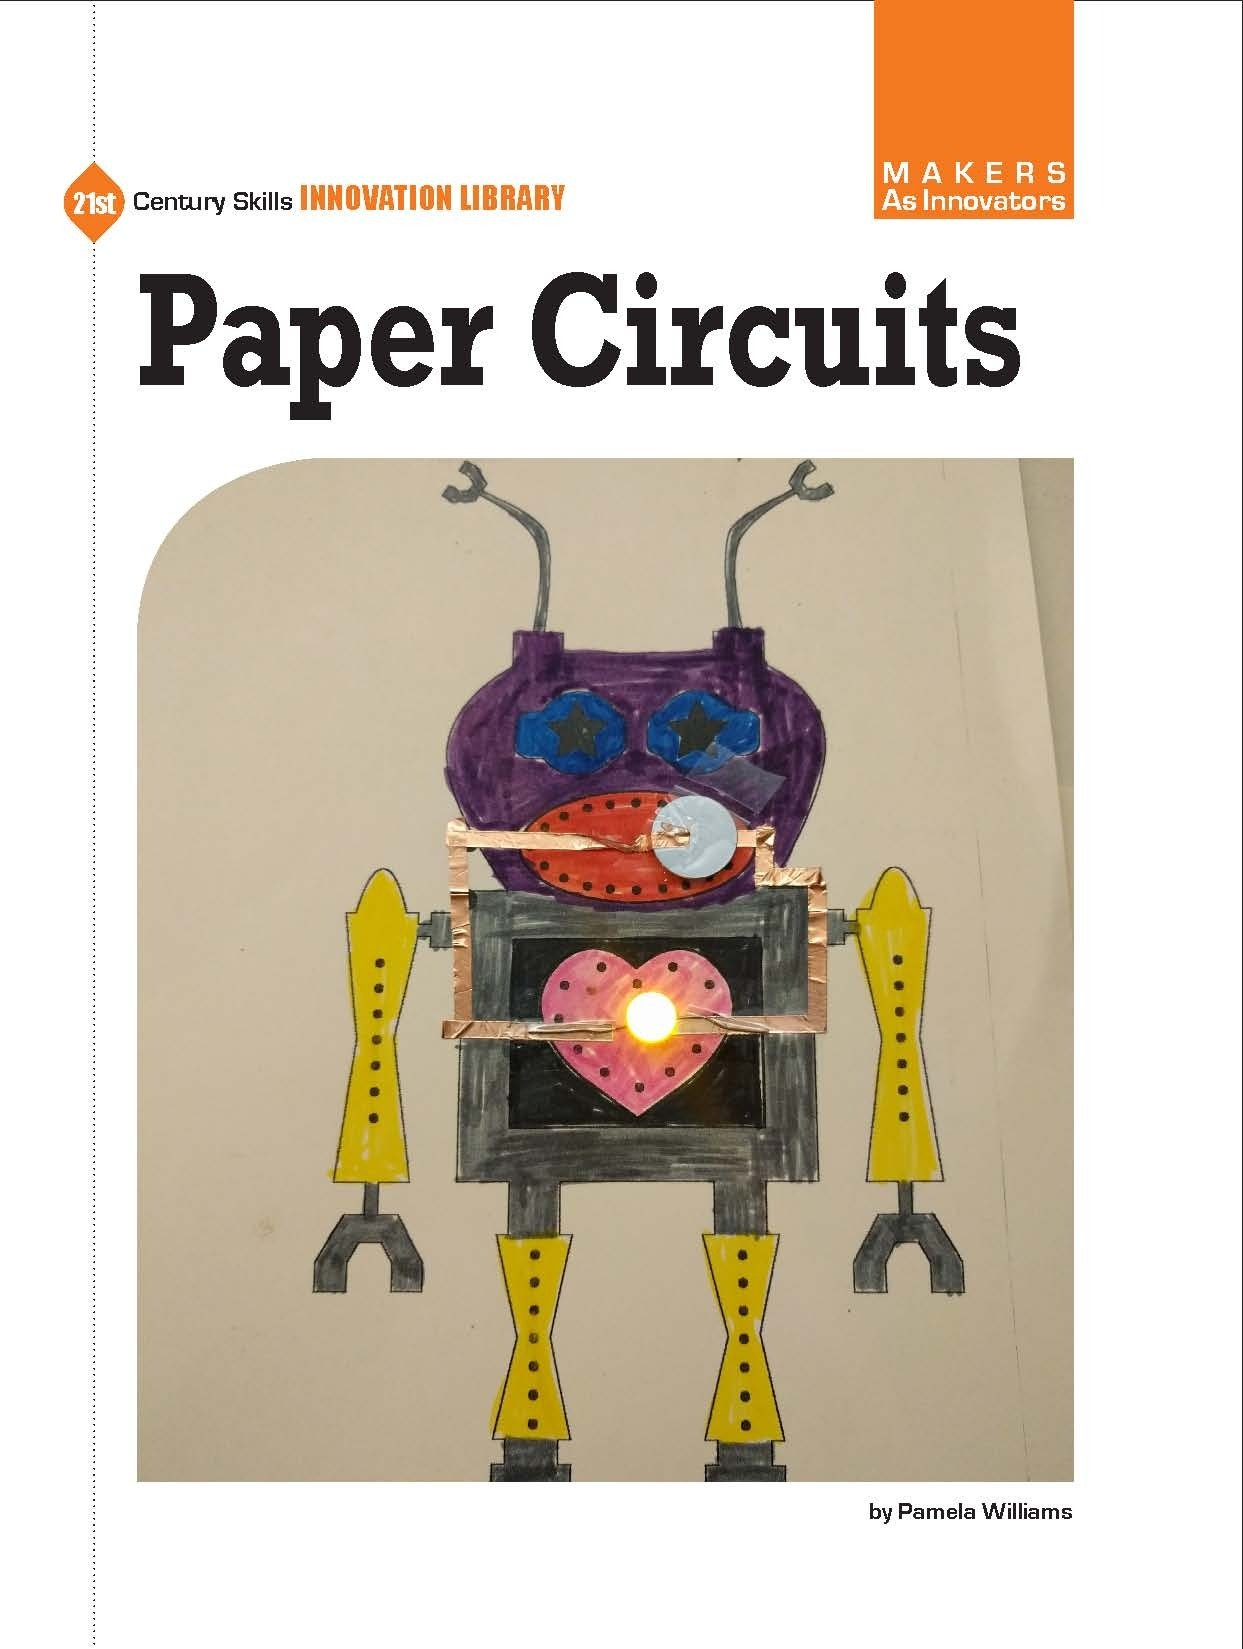 Paper Circuits (21st Century Skills Innovation Library: Makers as Innovators) (English Edition)